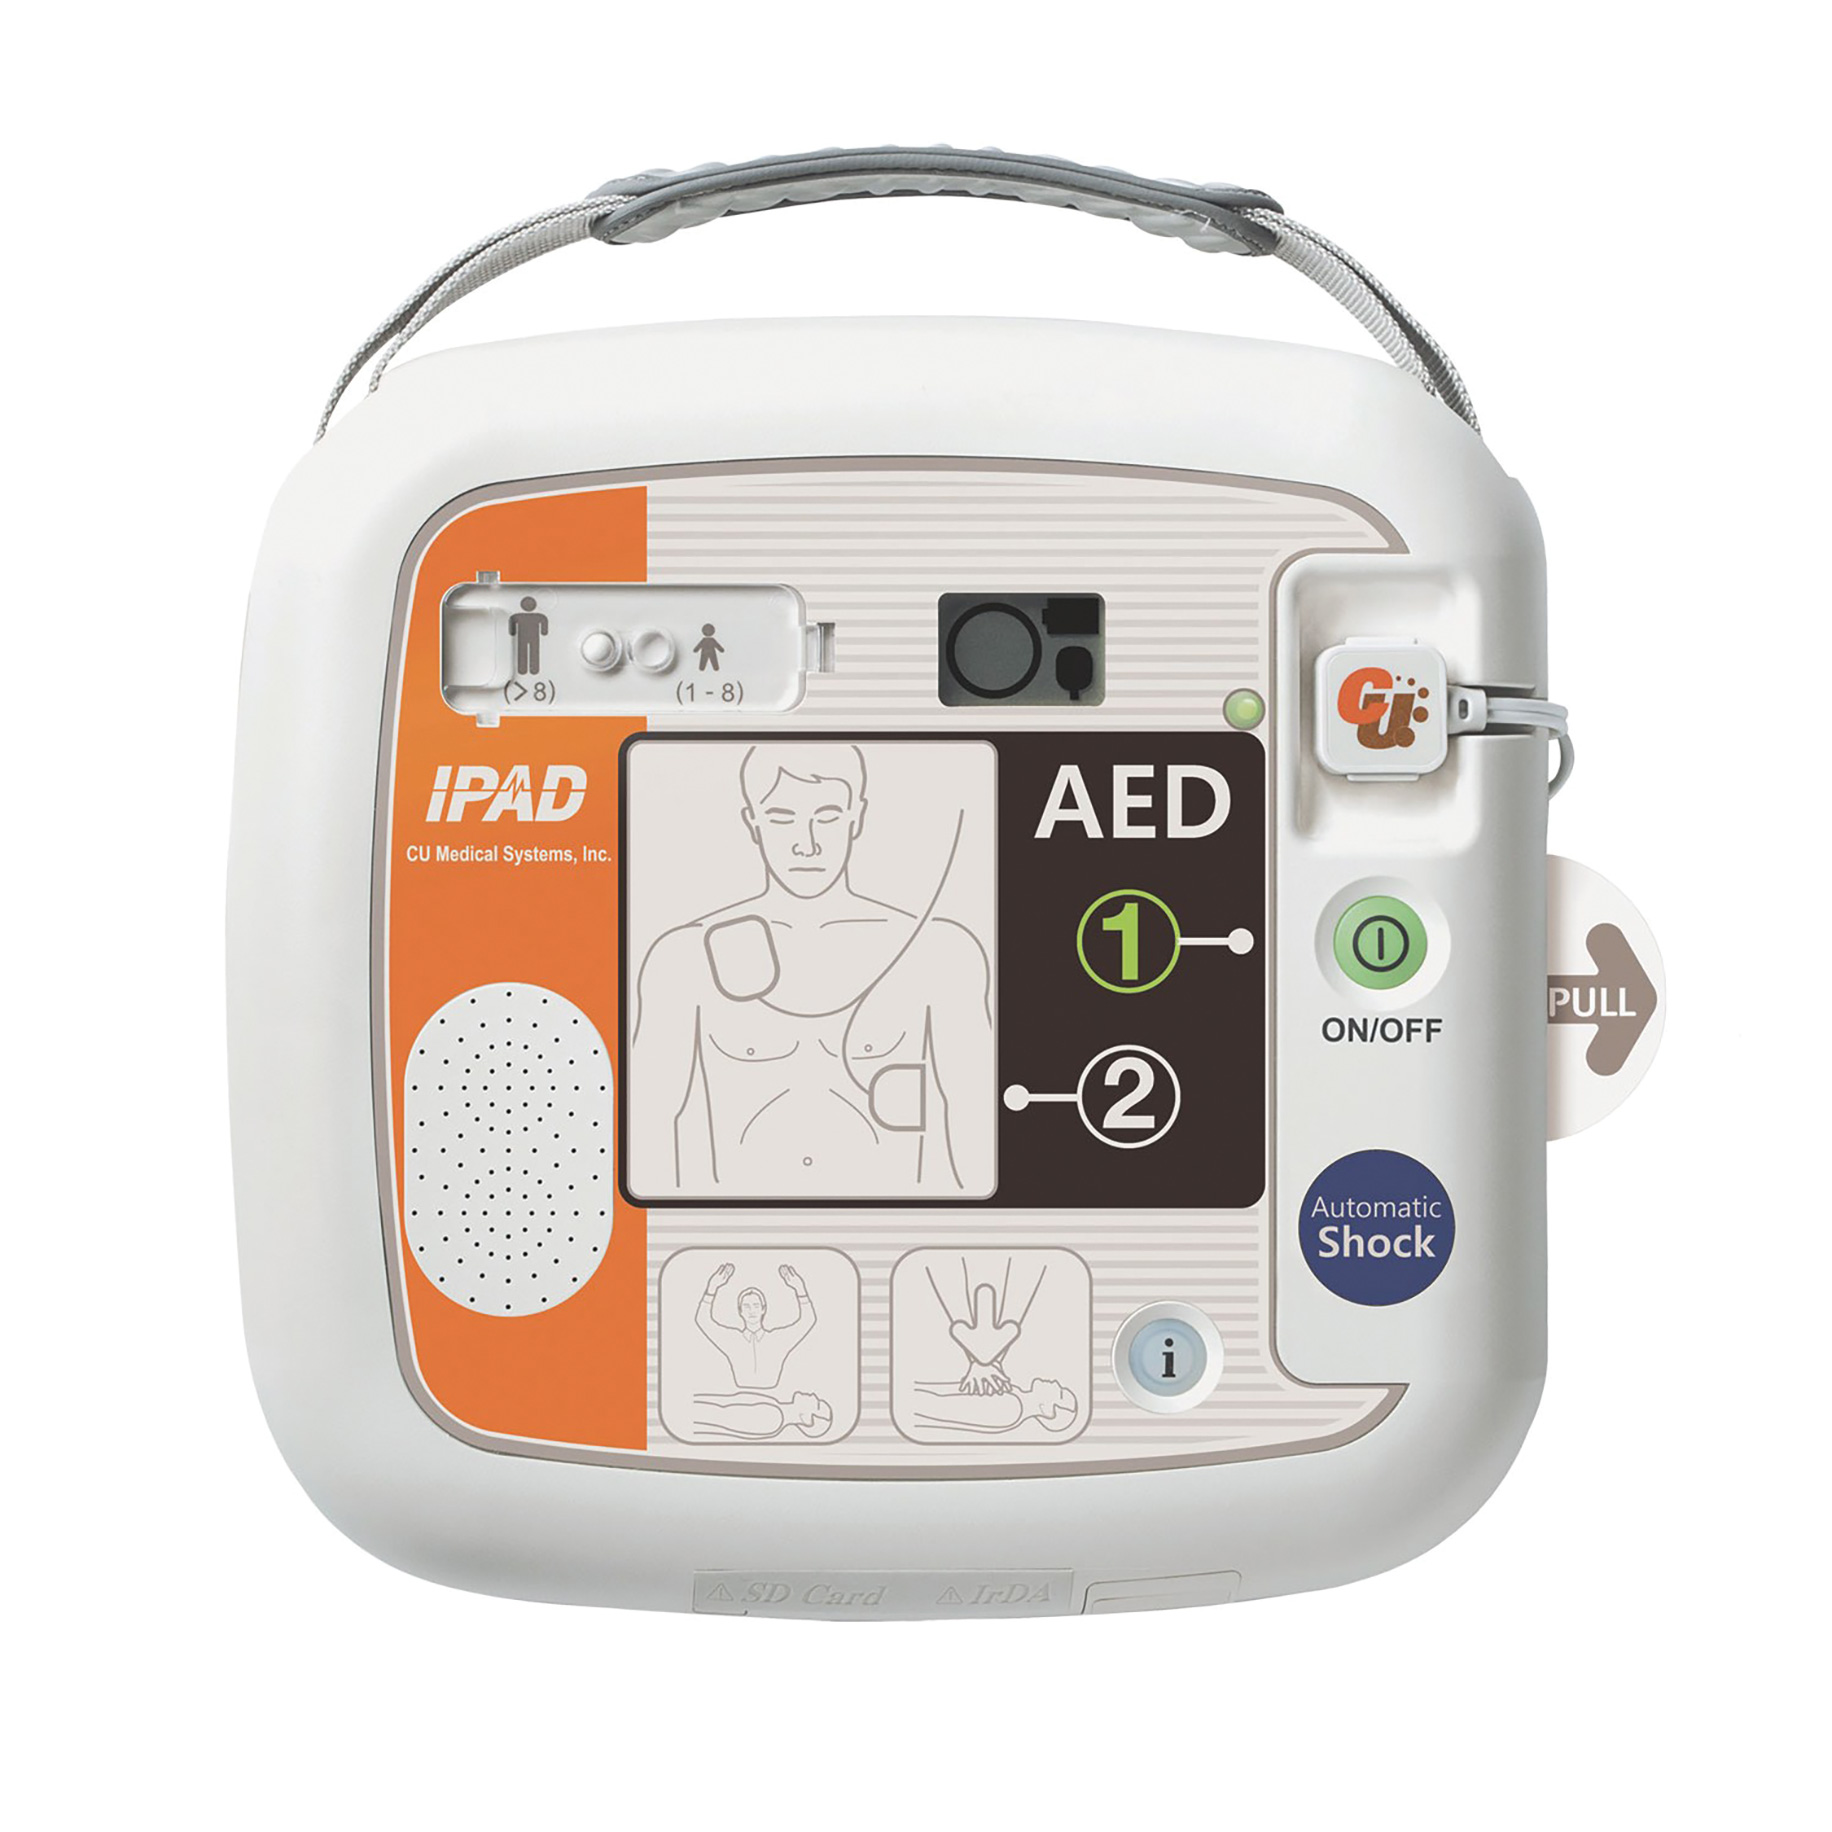 SP1 iPad Fully Auto Defibrillator